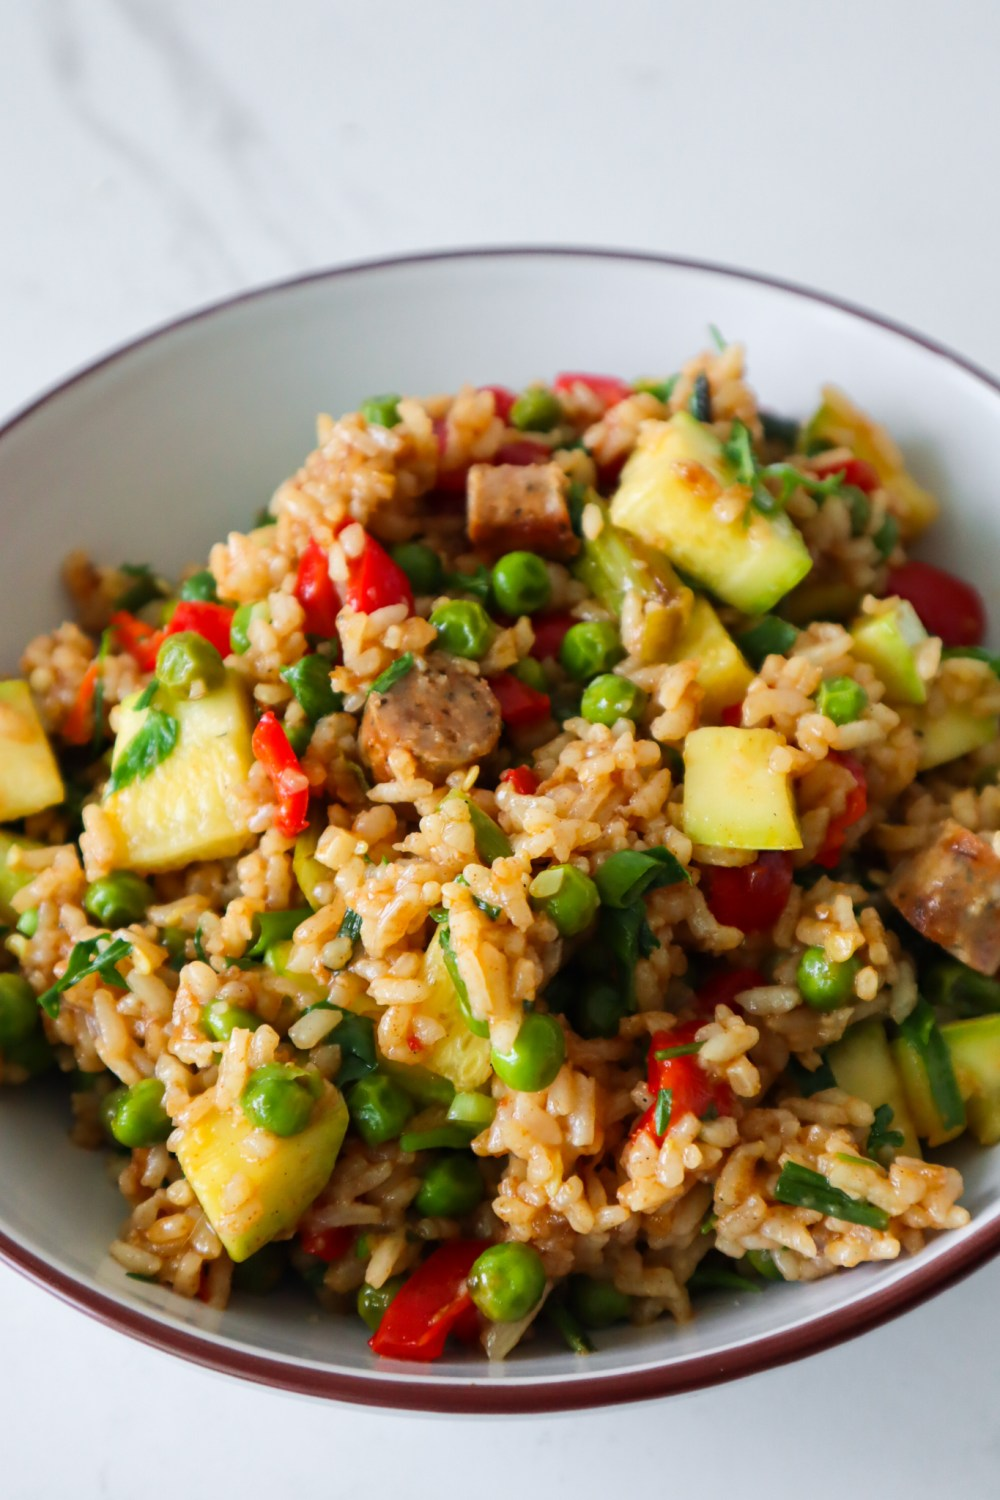 Quick and easy healthy rice and sausage recipe, the perfect weeknight dinner idea that you can make in less than 30 minutes.